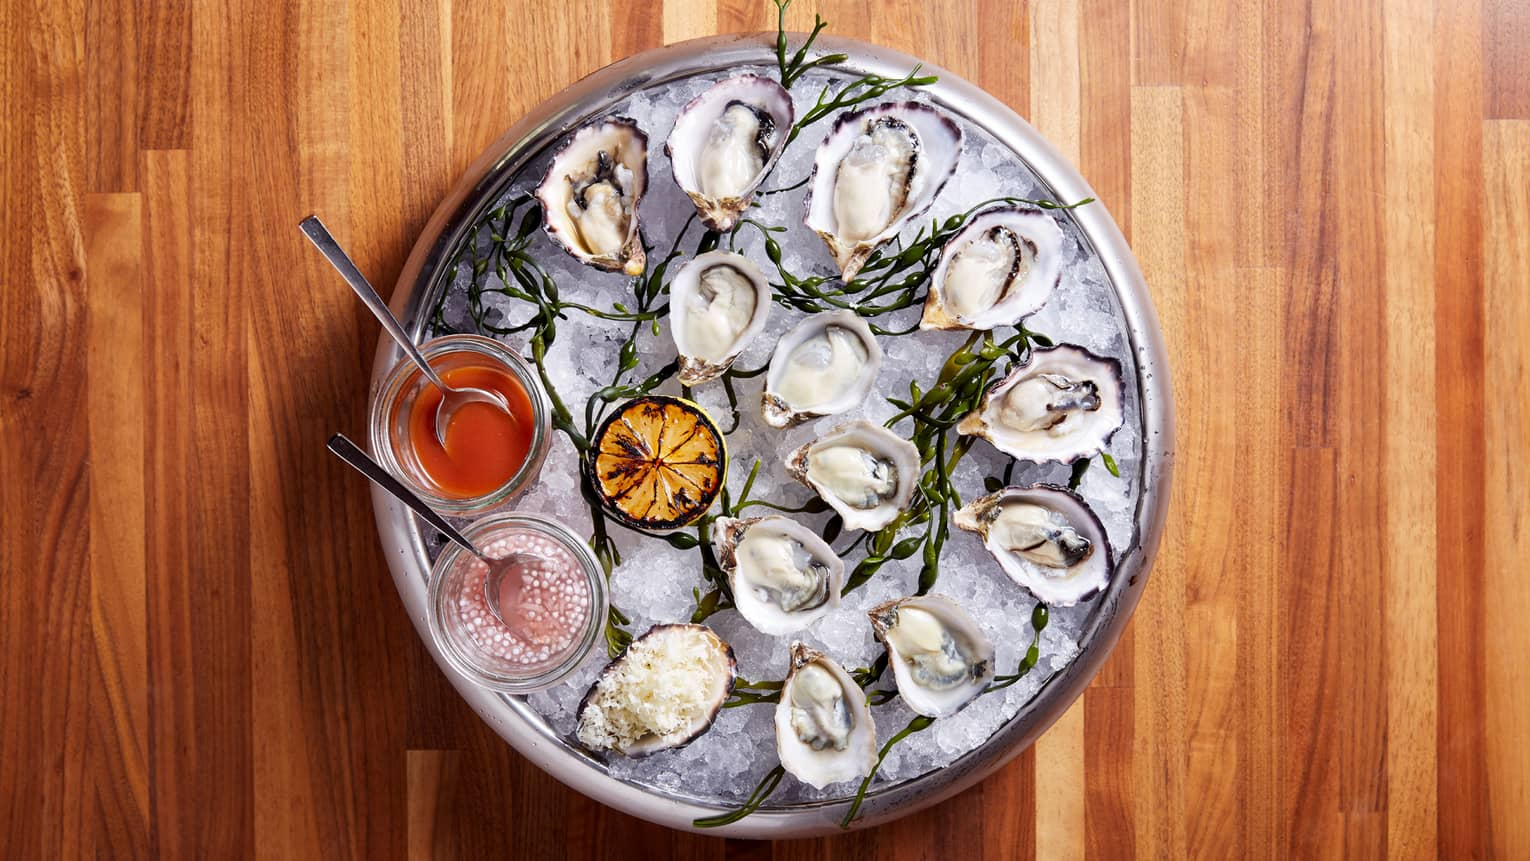 Aerial view of round silver platter with half shells and fresh oysters on ice, roasted lemon half and sauce bowls